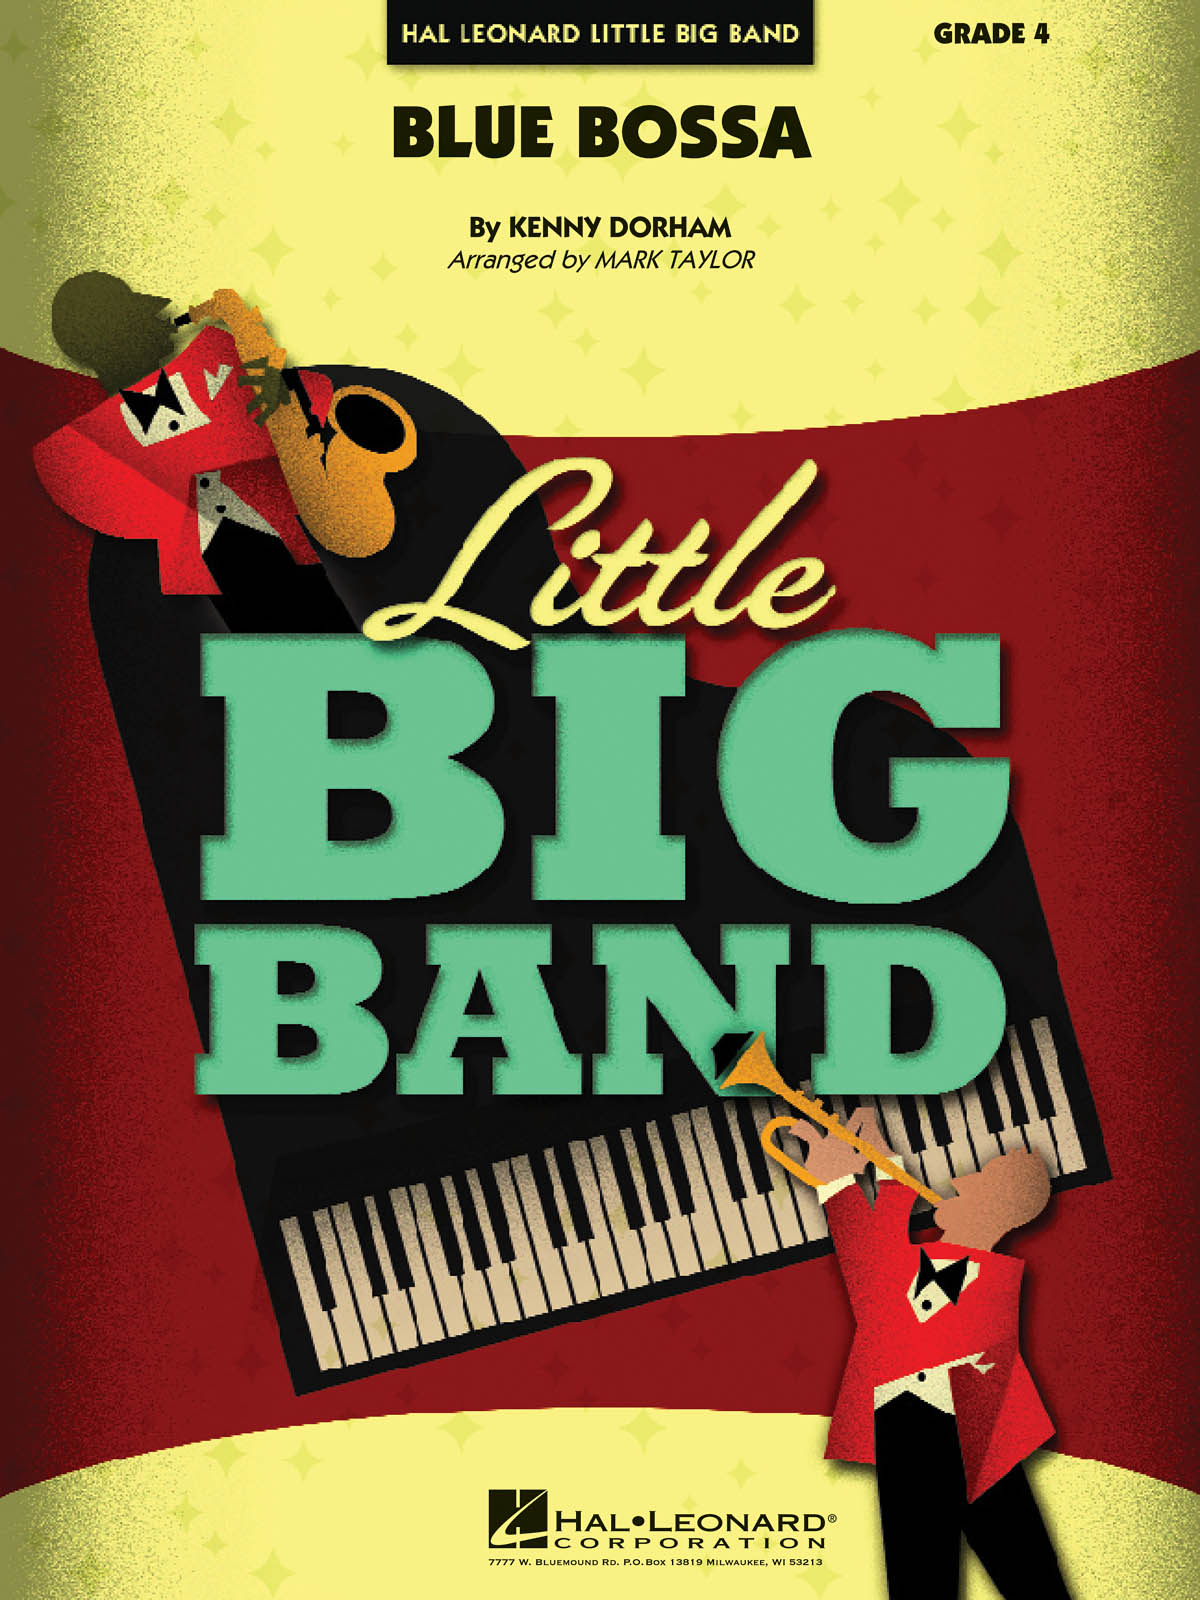 Blue Bossa: Little Big Band